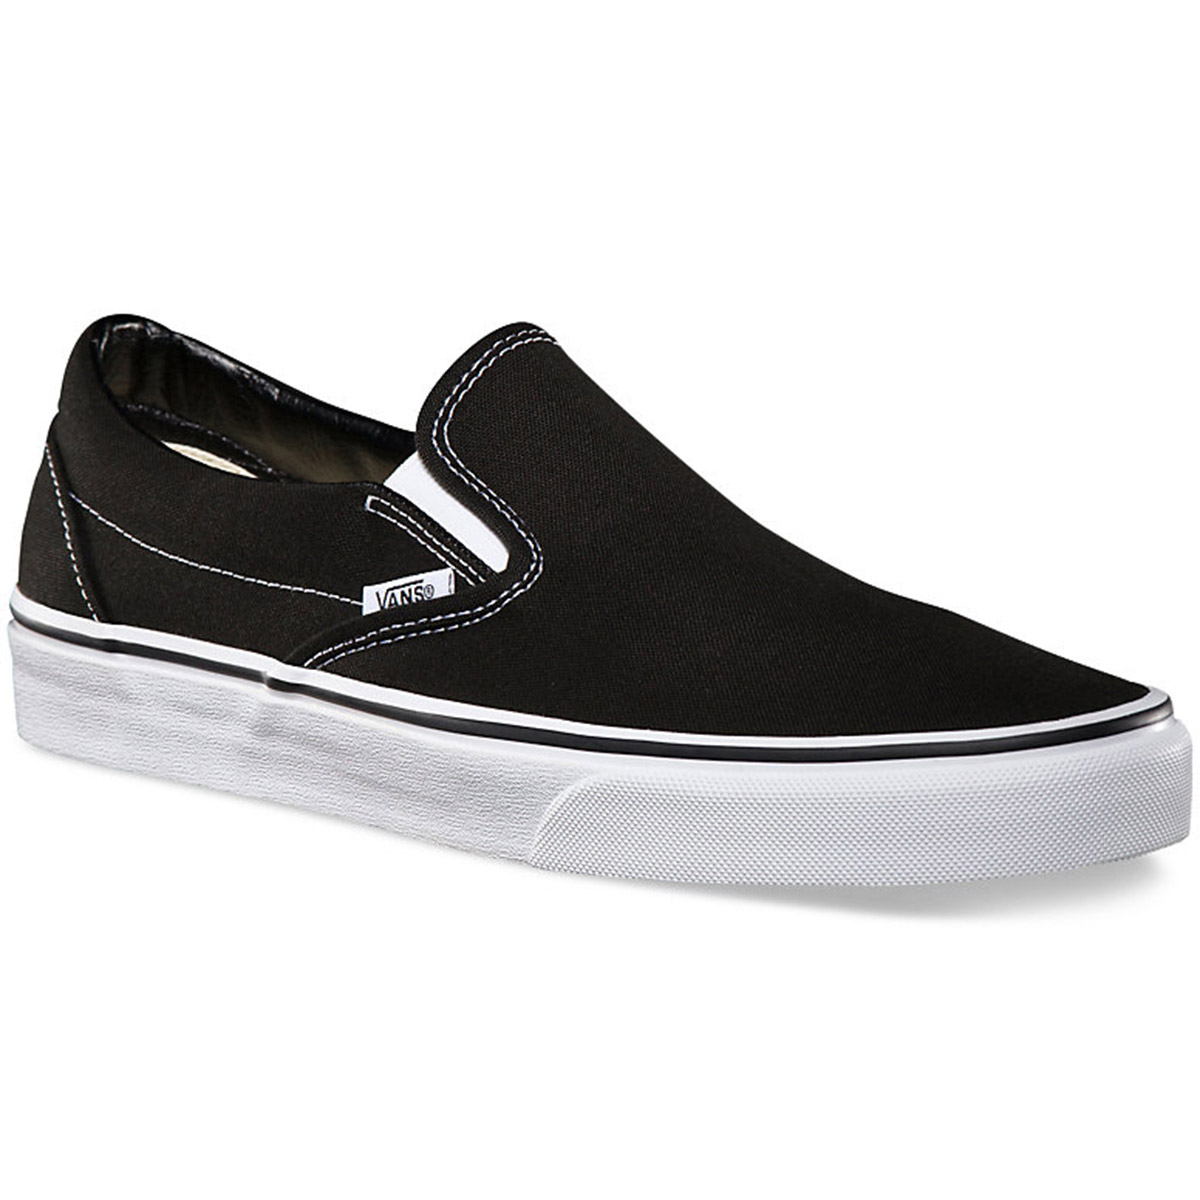 Vans Unisex Classic Slip-On Shoes - Black, 7.5